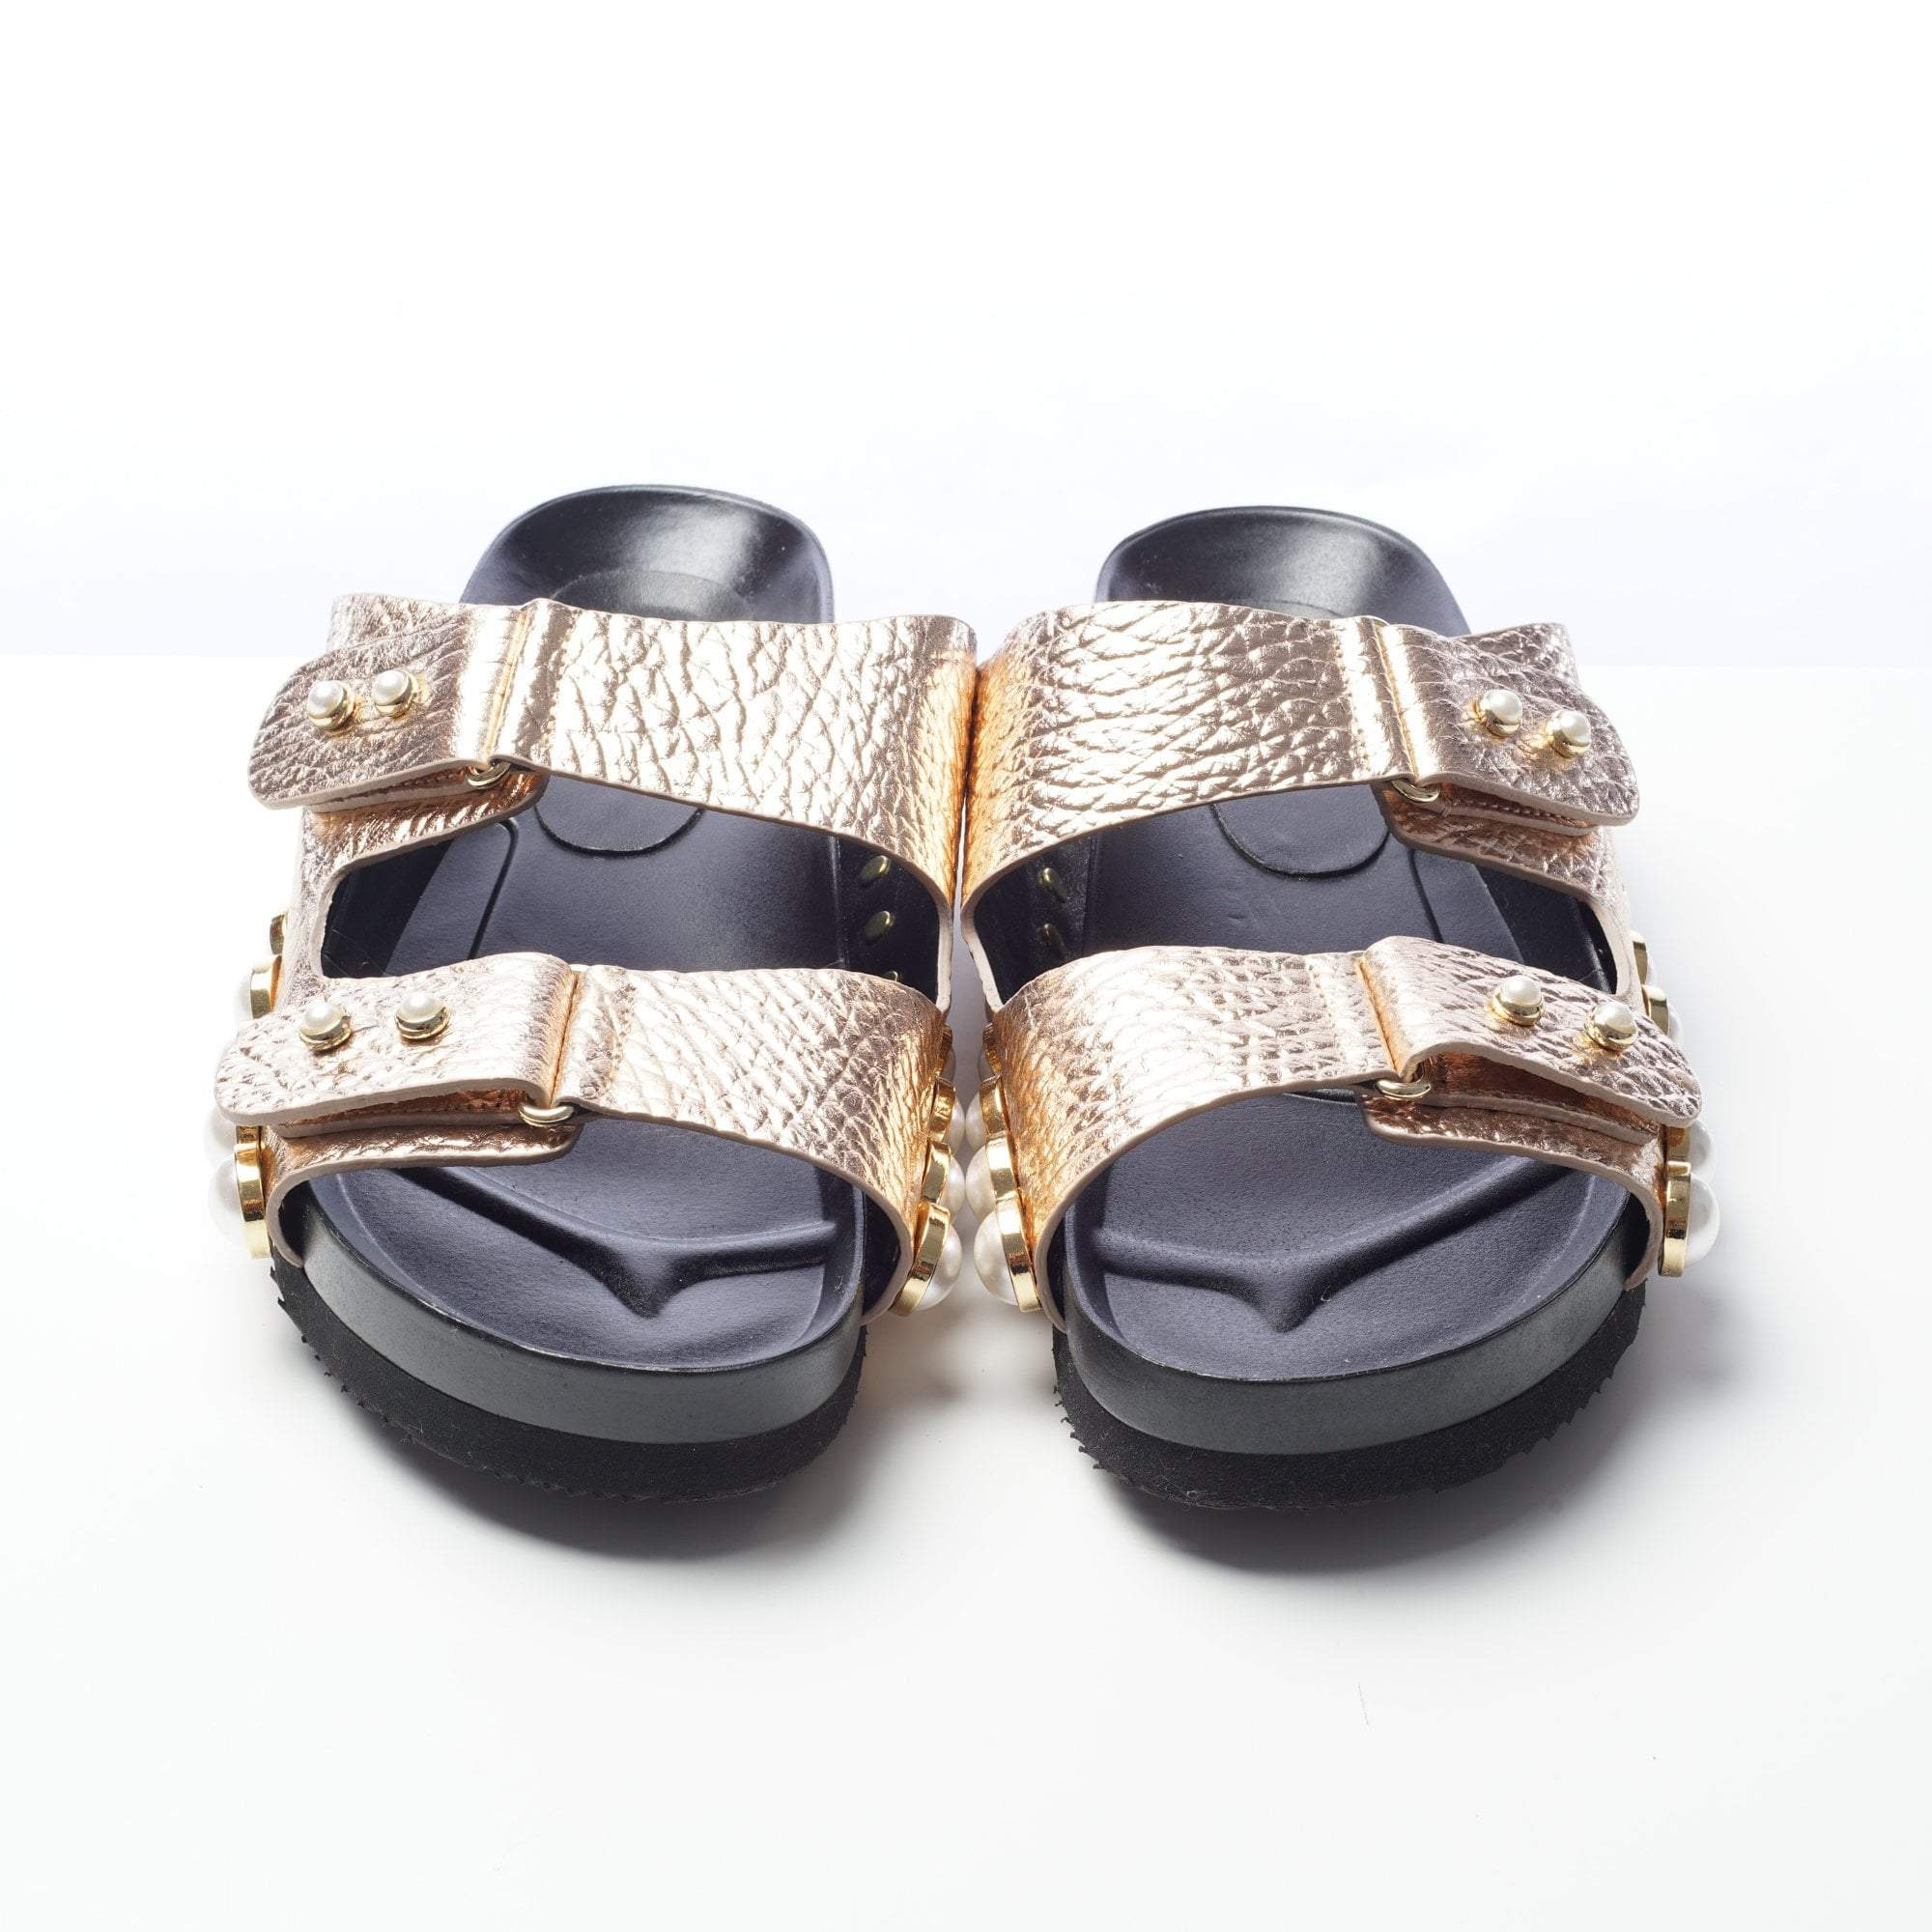 Suecomma Bonnie Two Band Cracked Rose Gold Leather Slippers